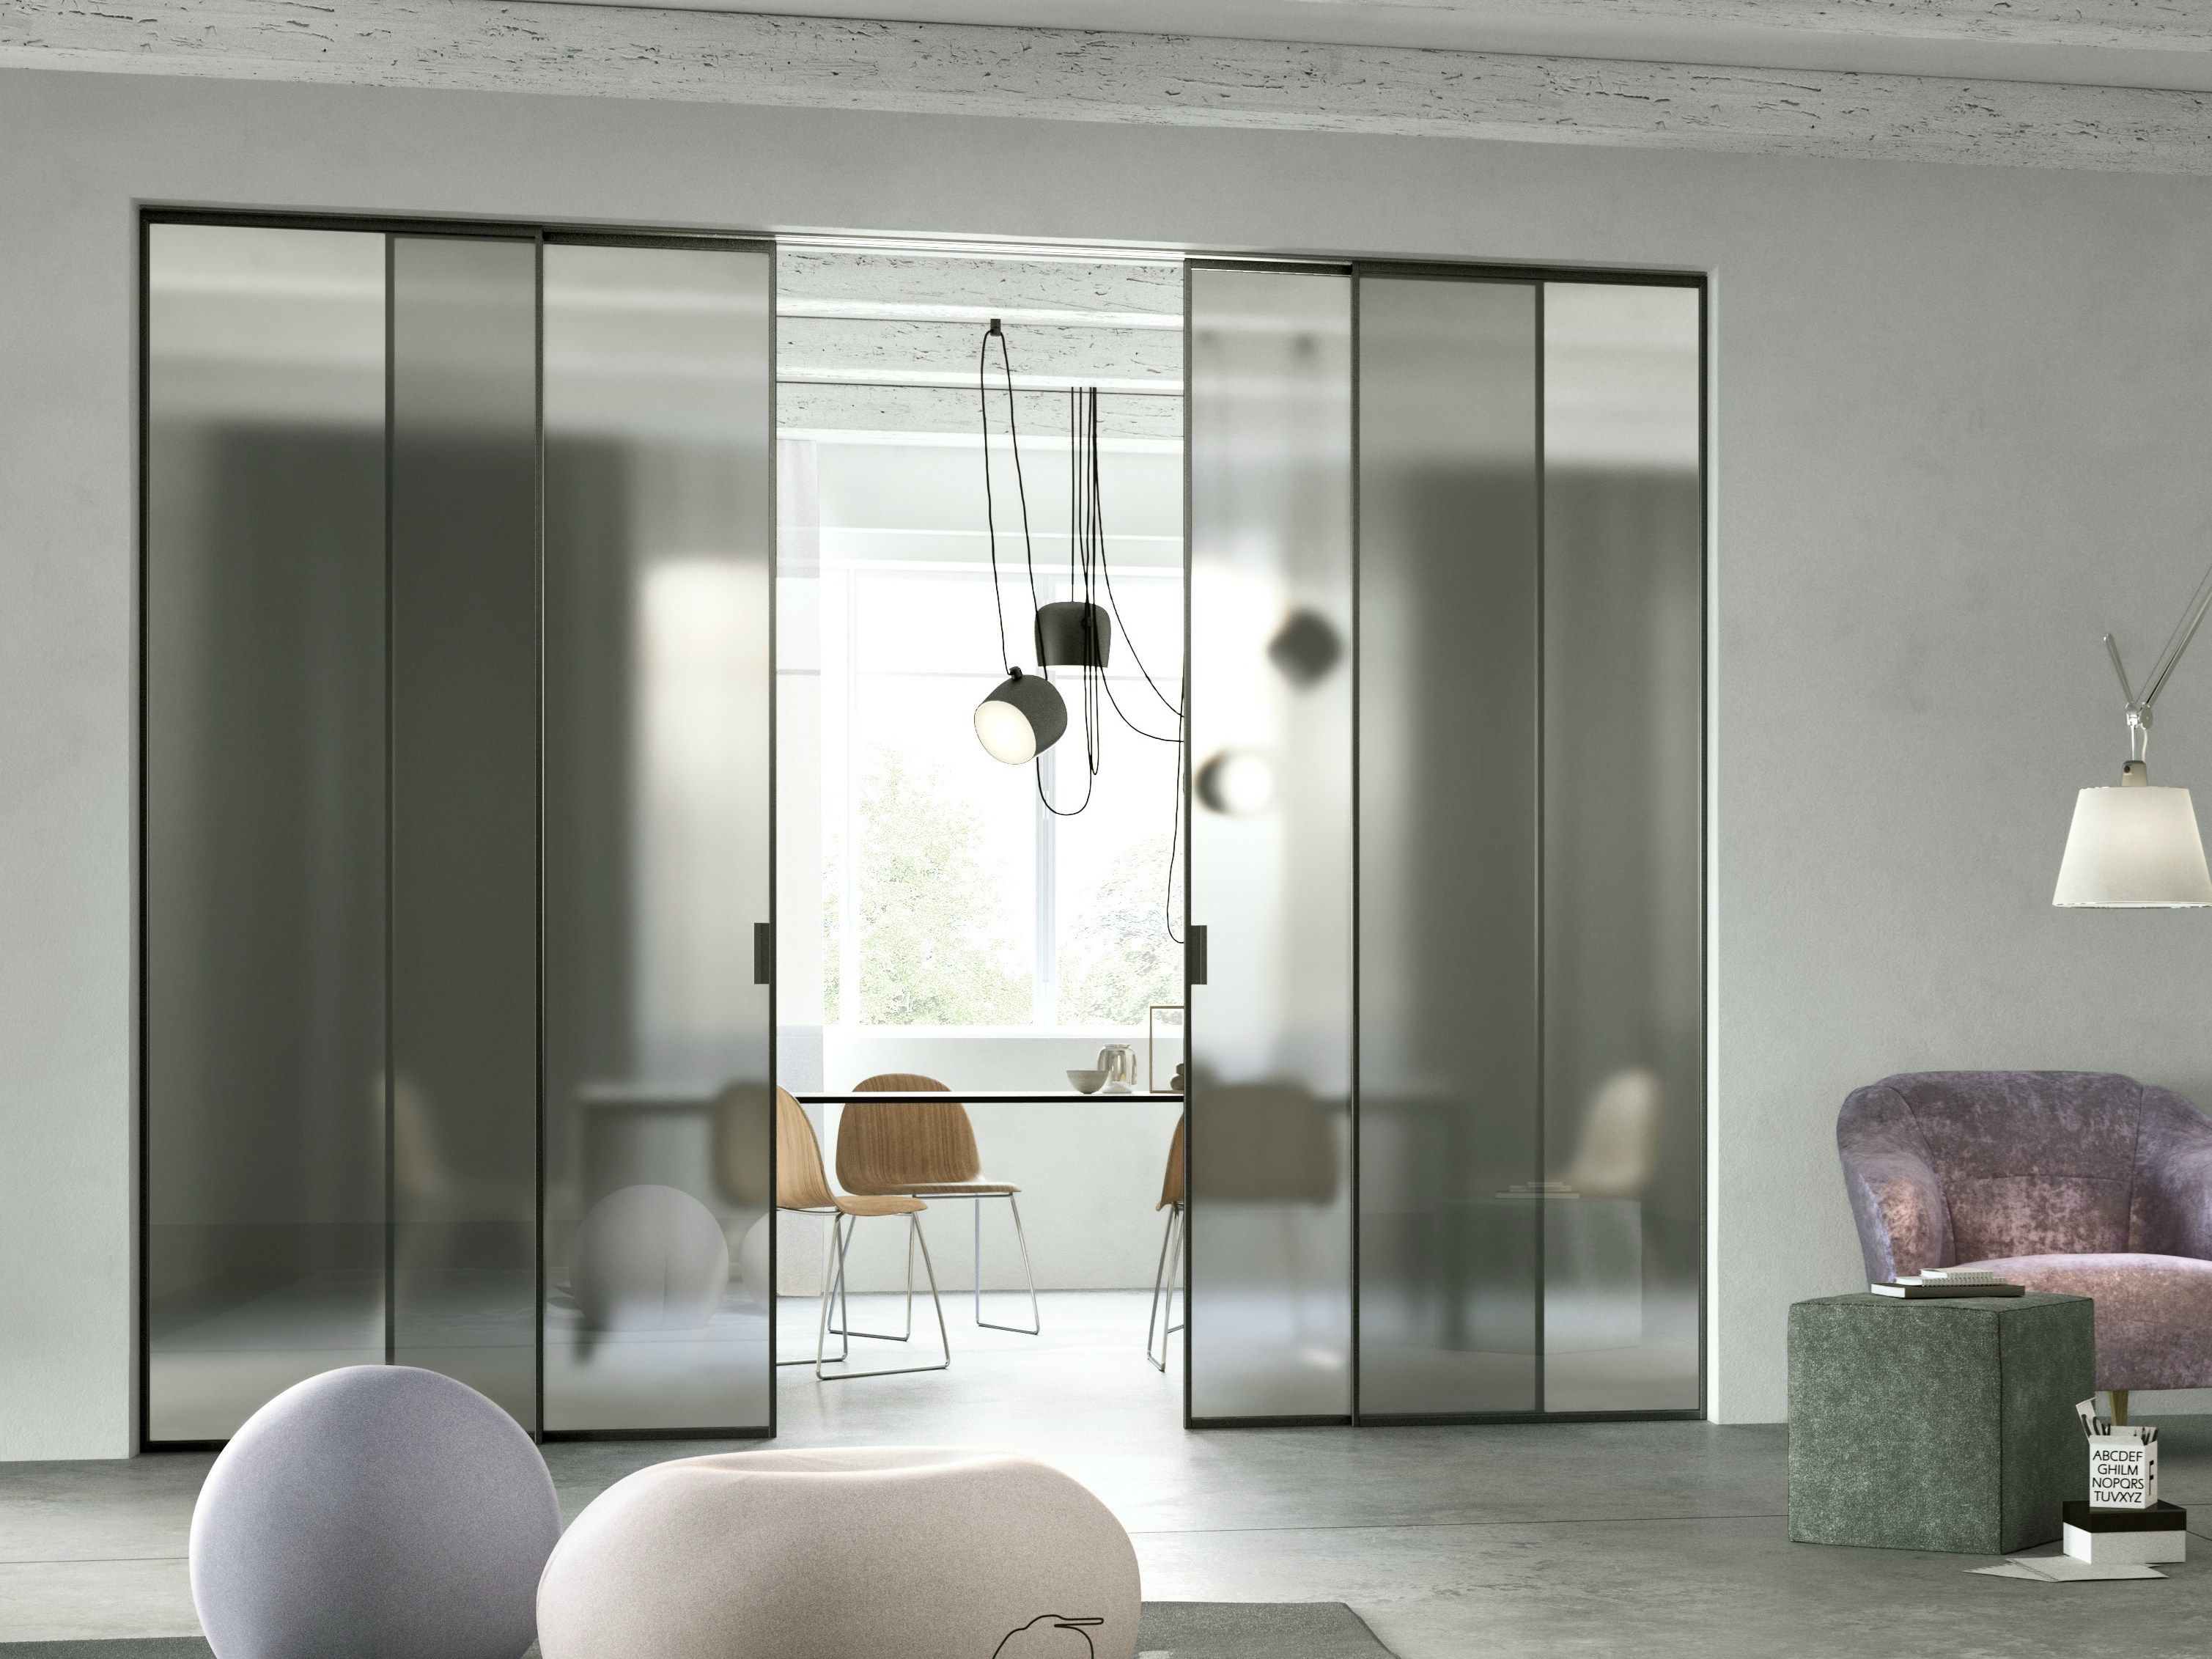 frosted glass office door. GLASS SLIDING DOOR DELINEO E VISIO SCENARIO COLLECTION BY FERREROLEGNO Frosted Glass Office Door